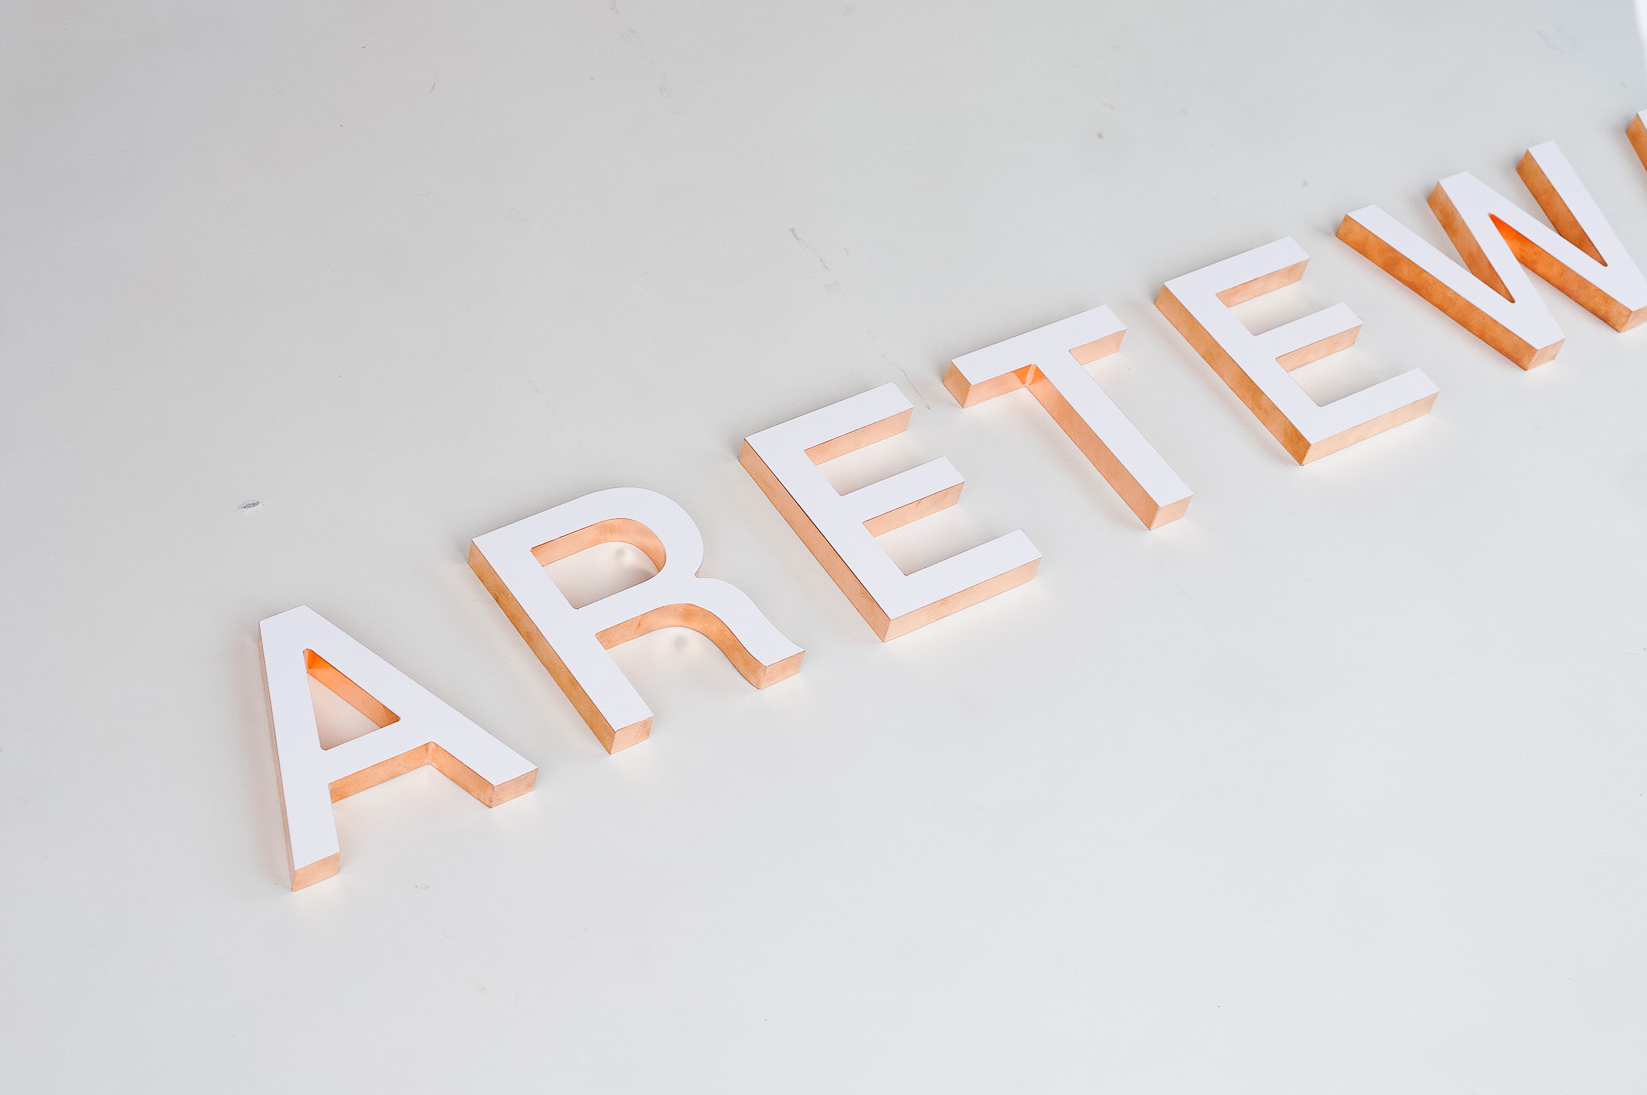 White letters with copper edges for Areteway, a clothing and gift boutique in Santa Rosa, CA.